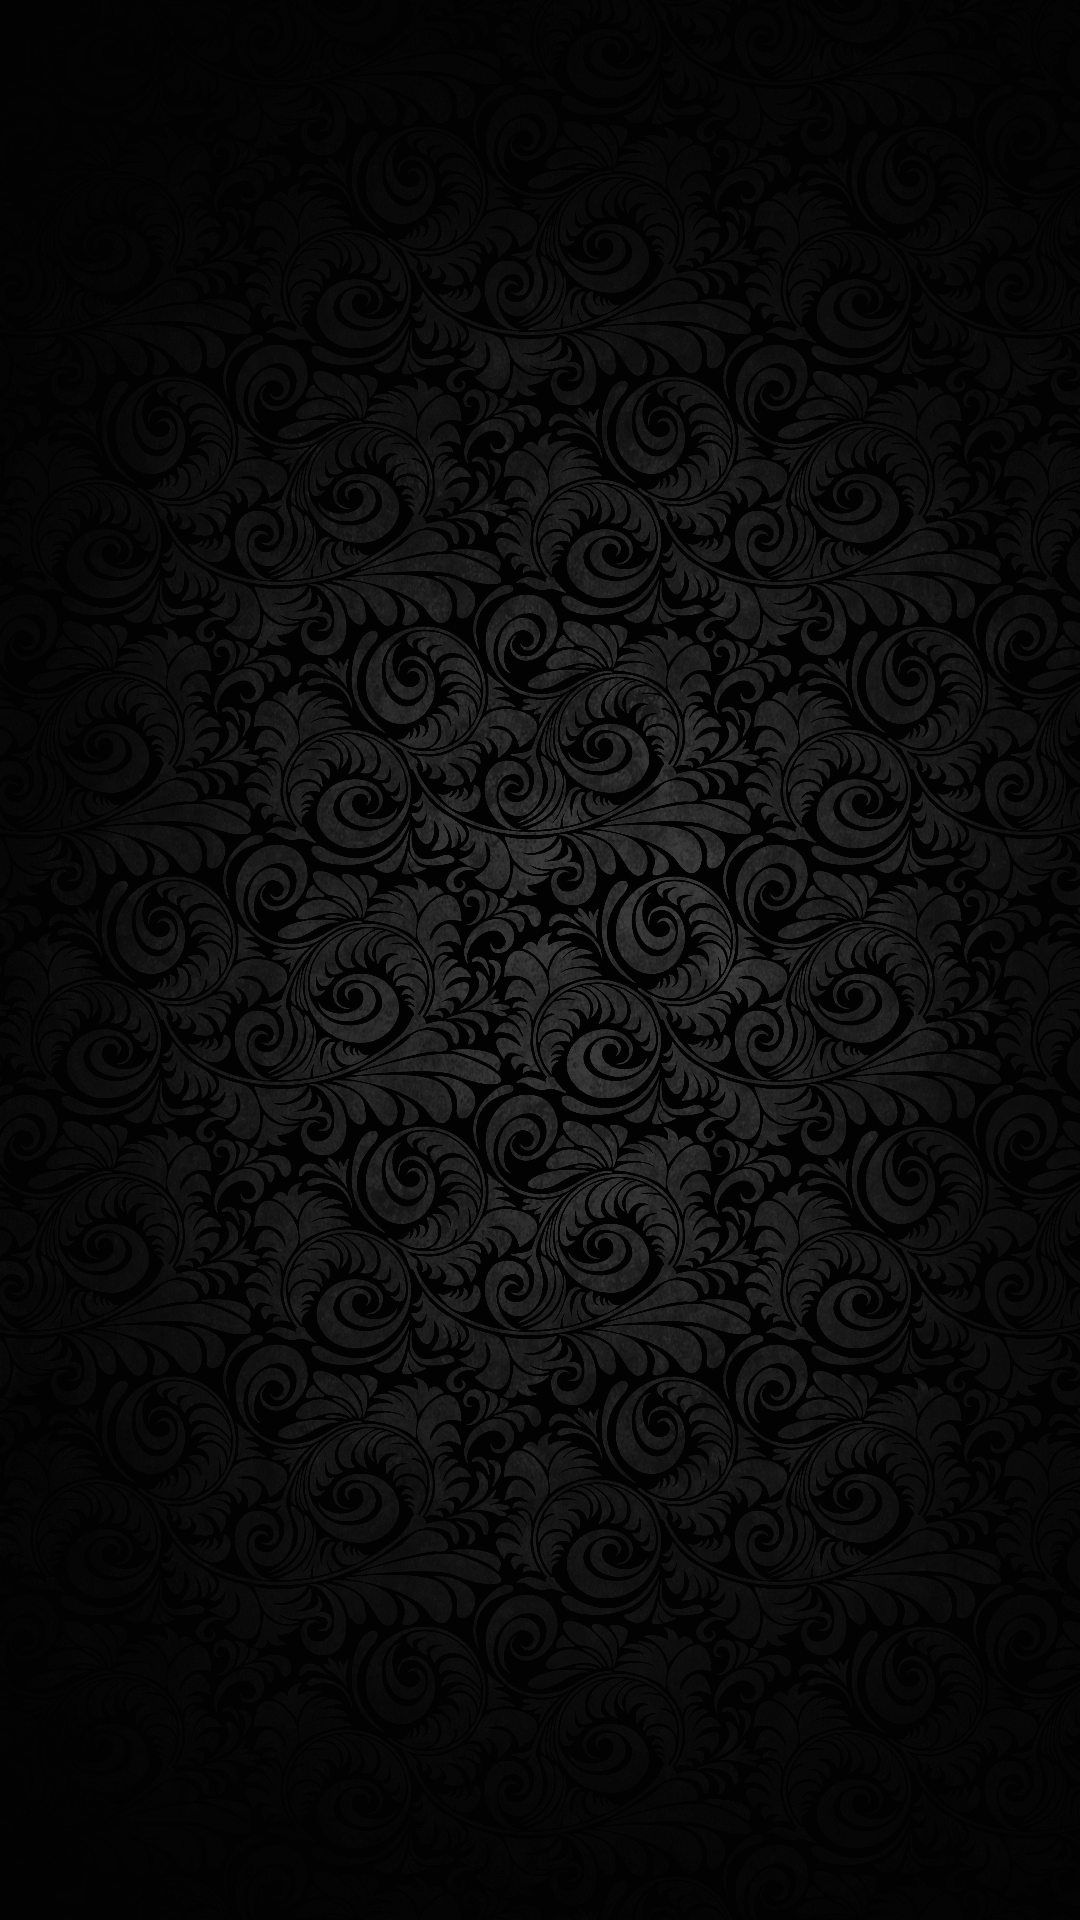 Wallpaper full hd 1080 x 1920 smartphone dark elegant for Black wallpaper full hd